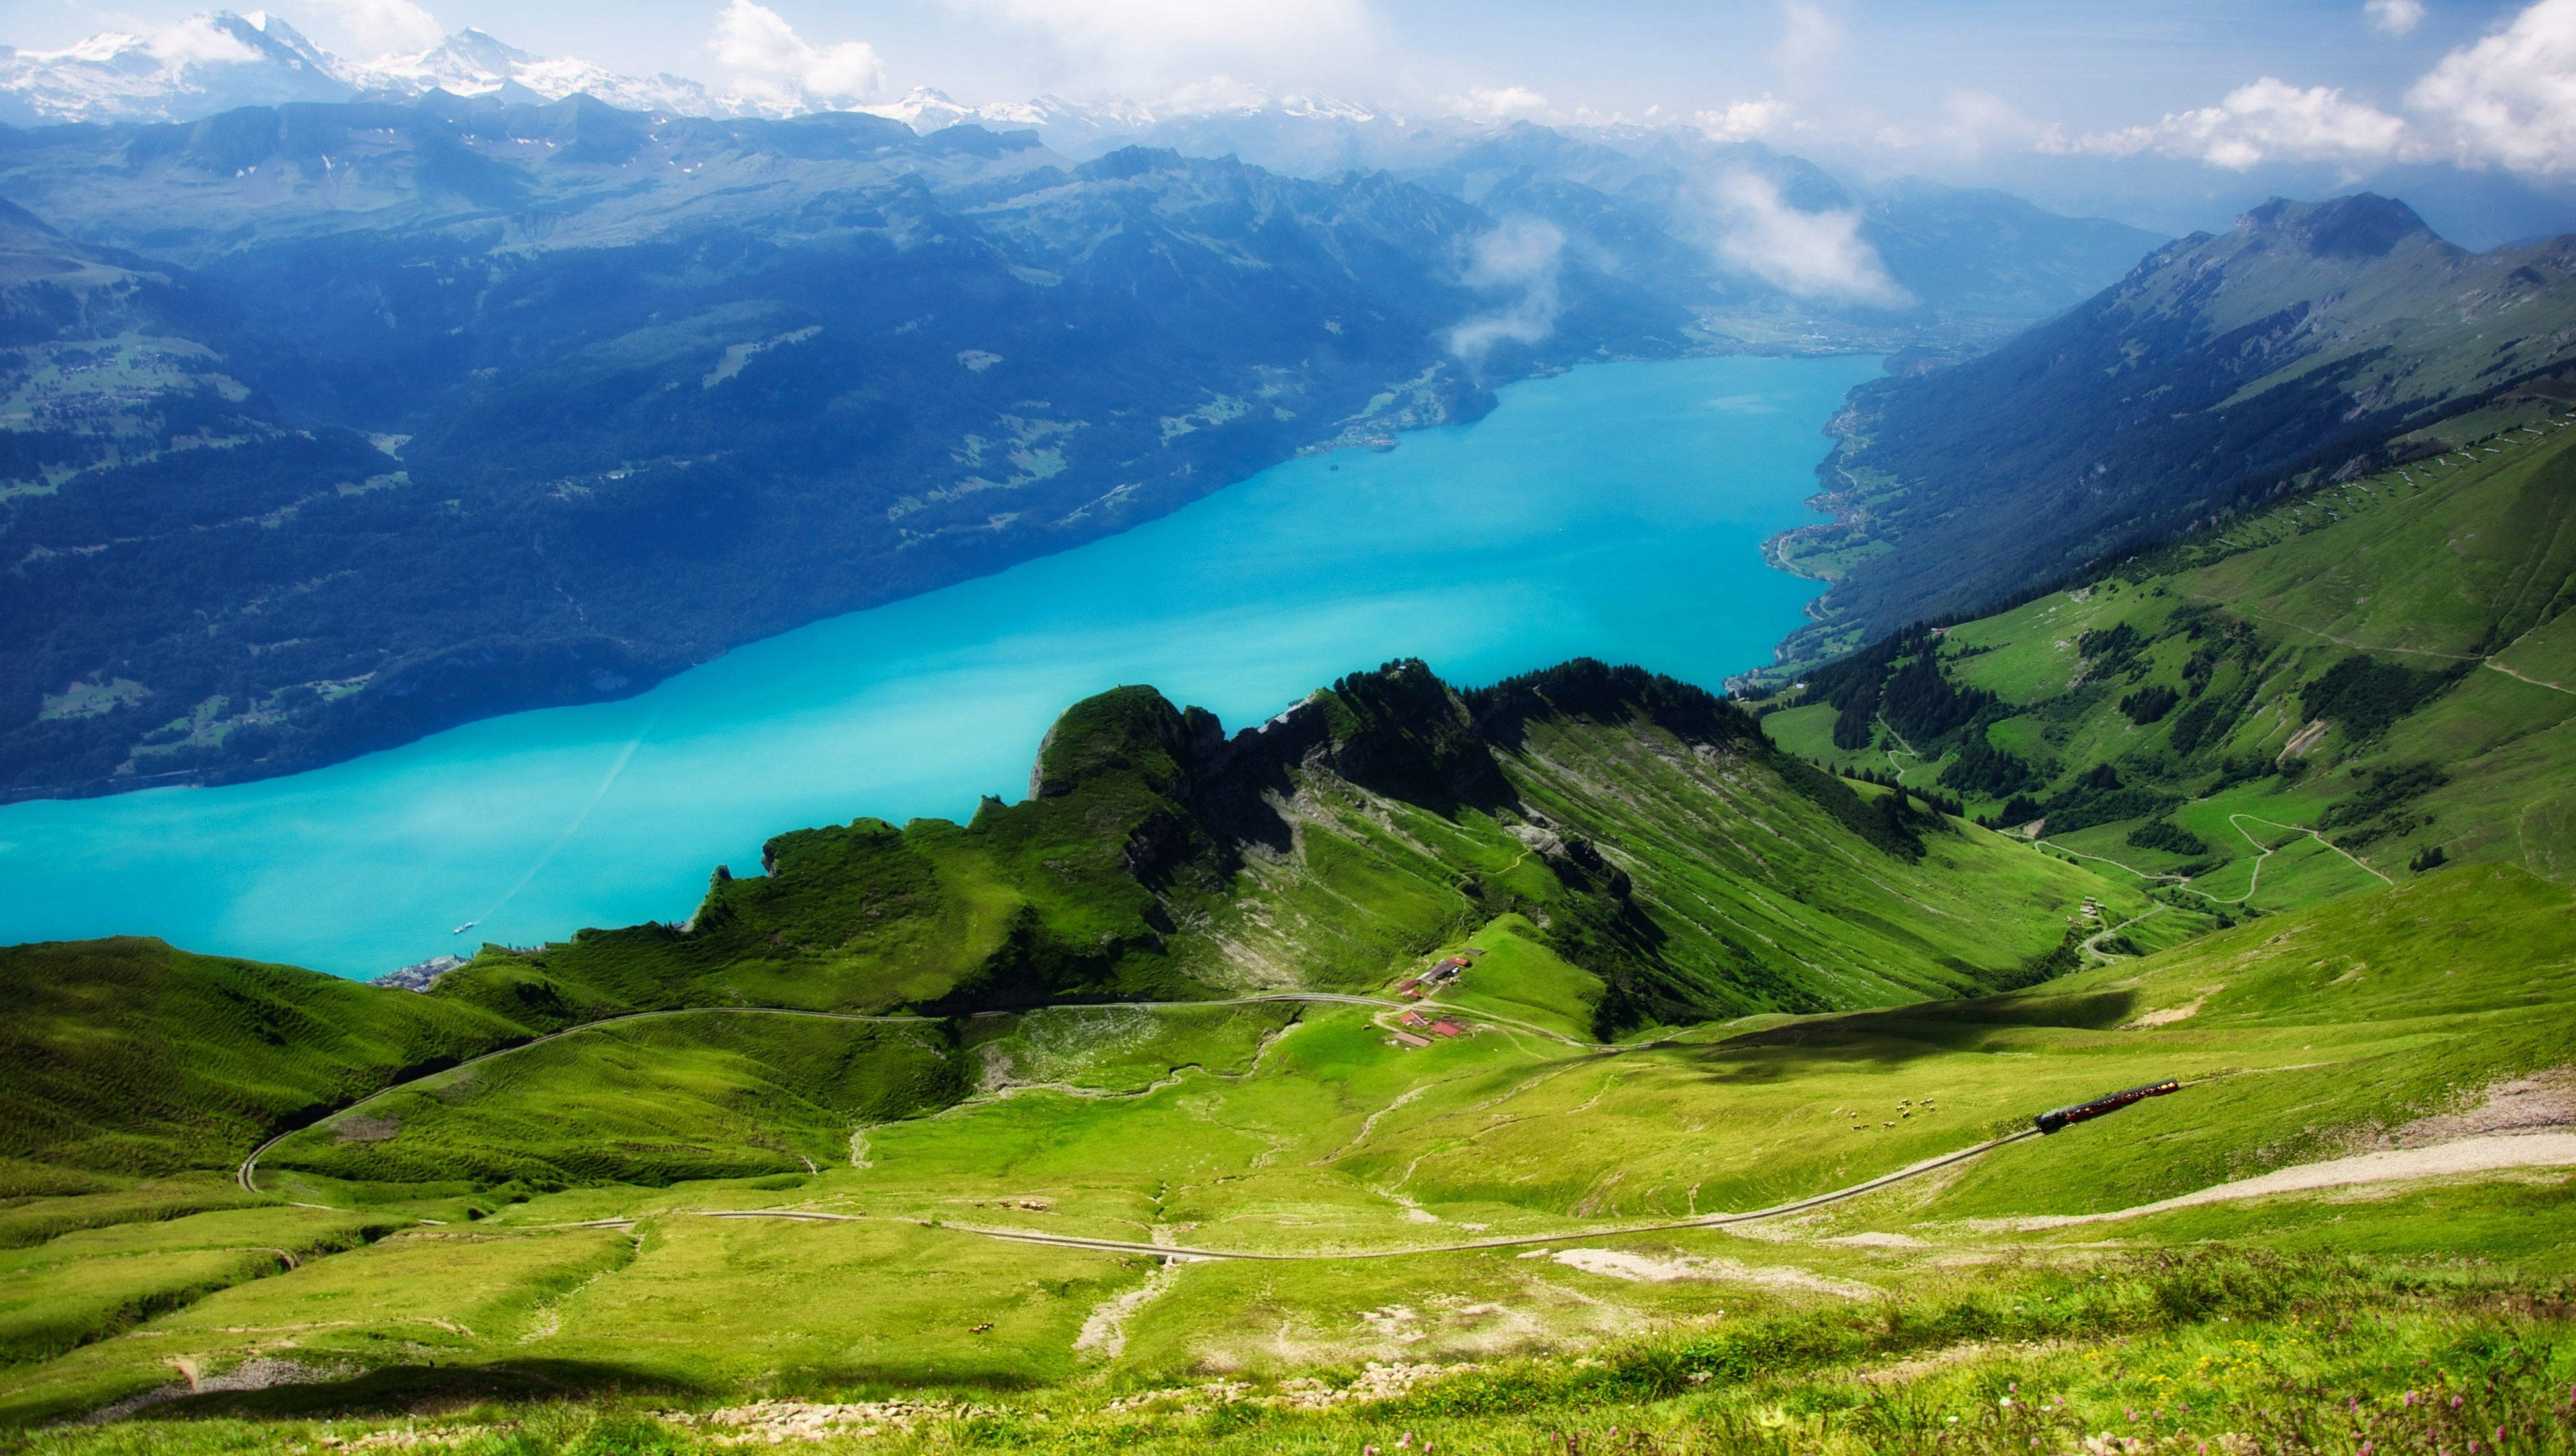 wallpaper switzerland, 5k, 4k wallpaper, alps, mountains, meadows